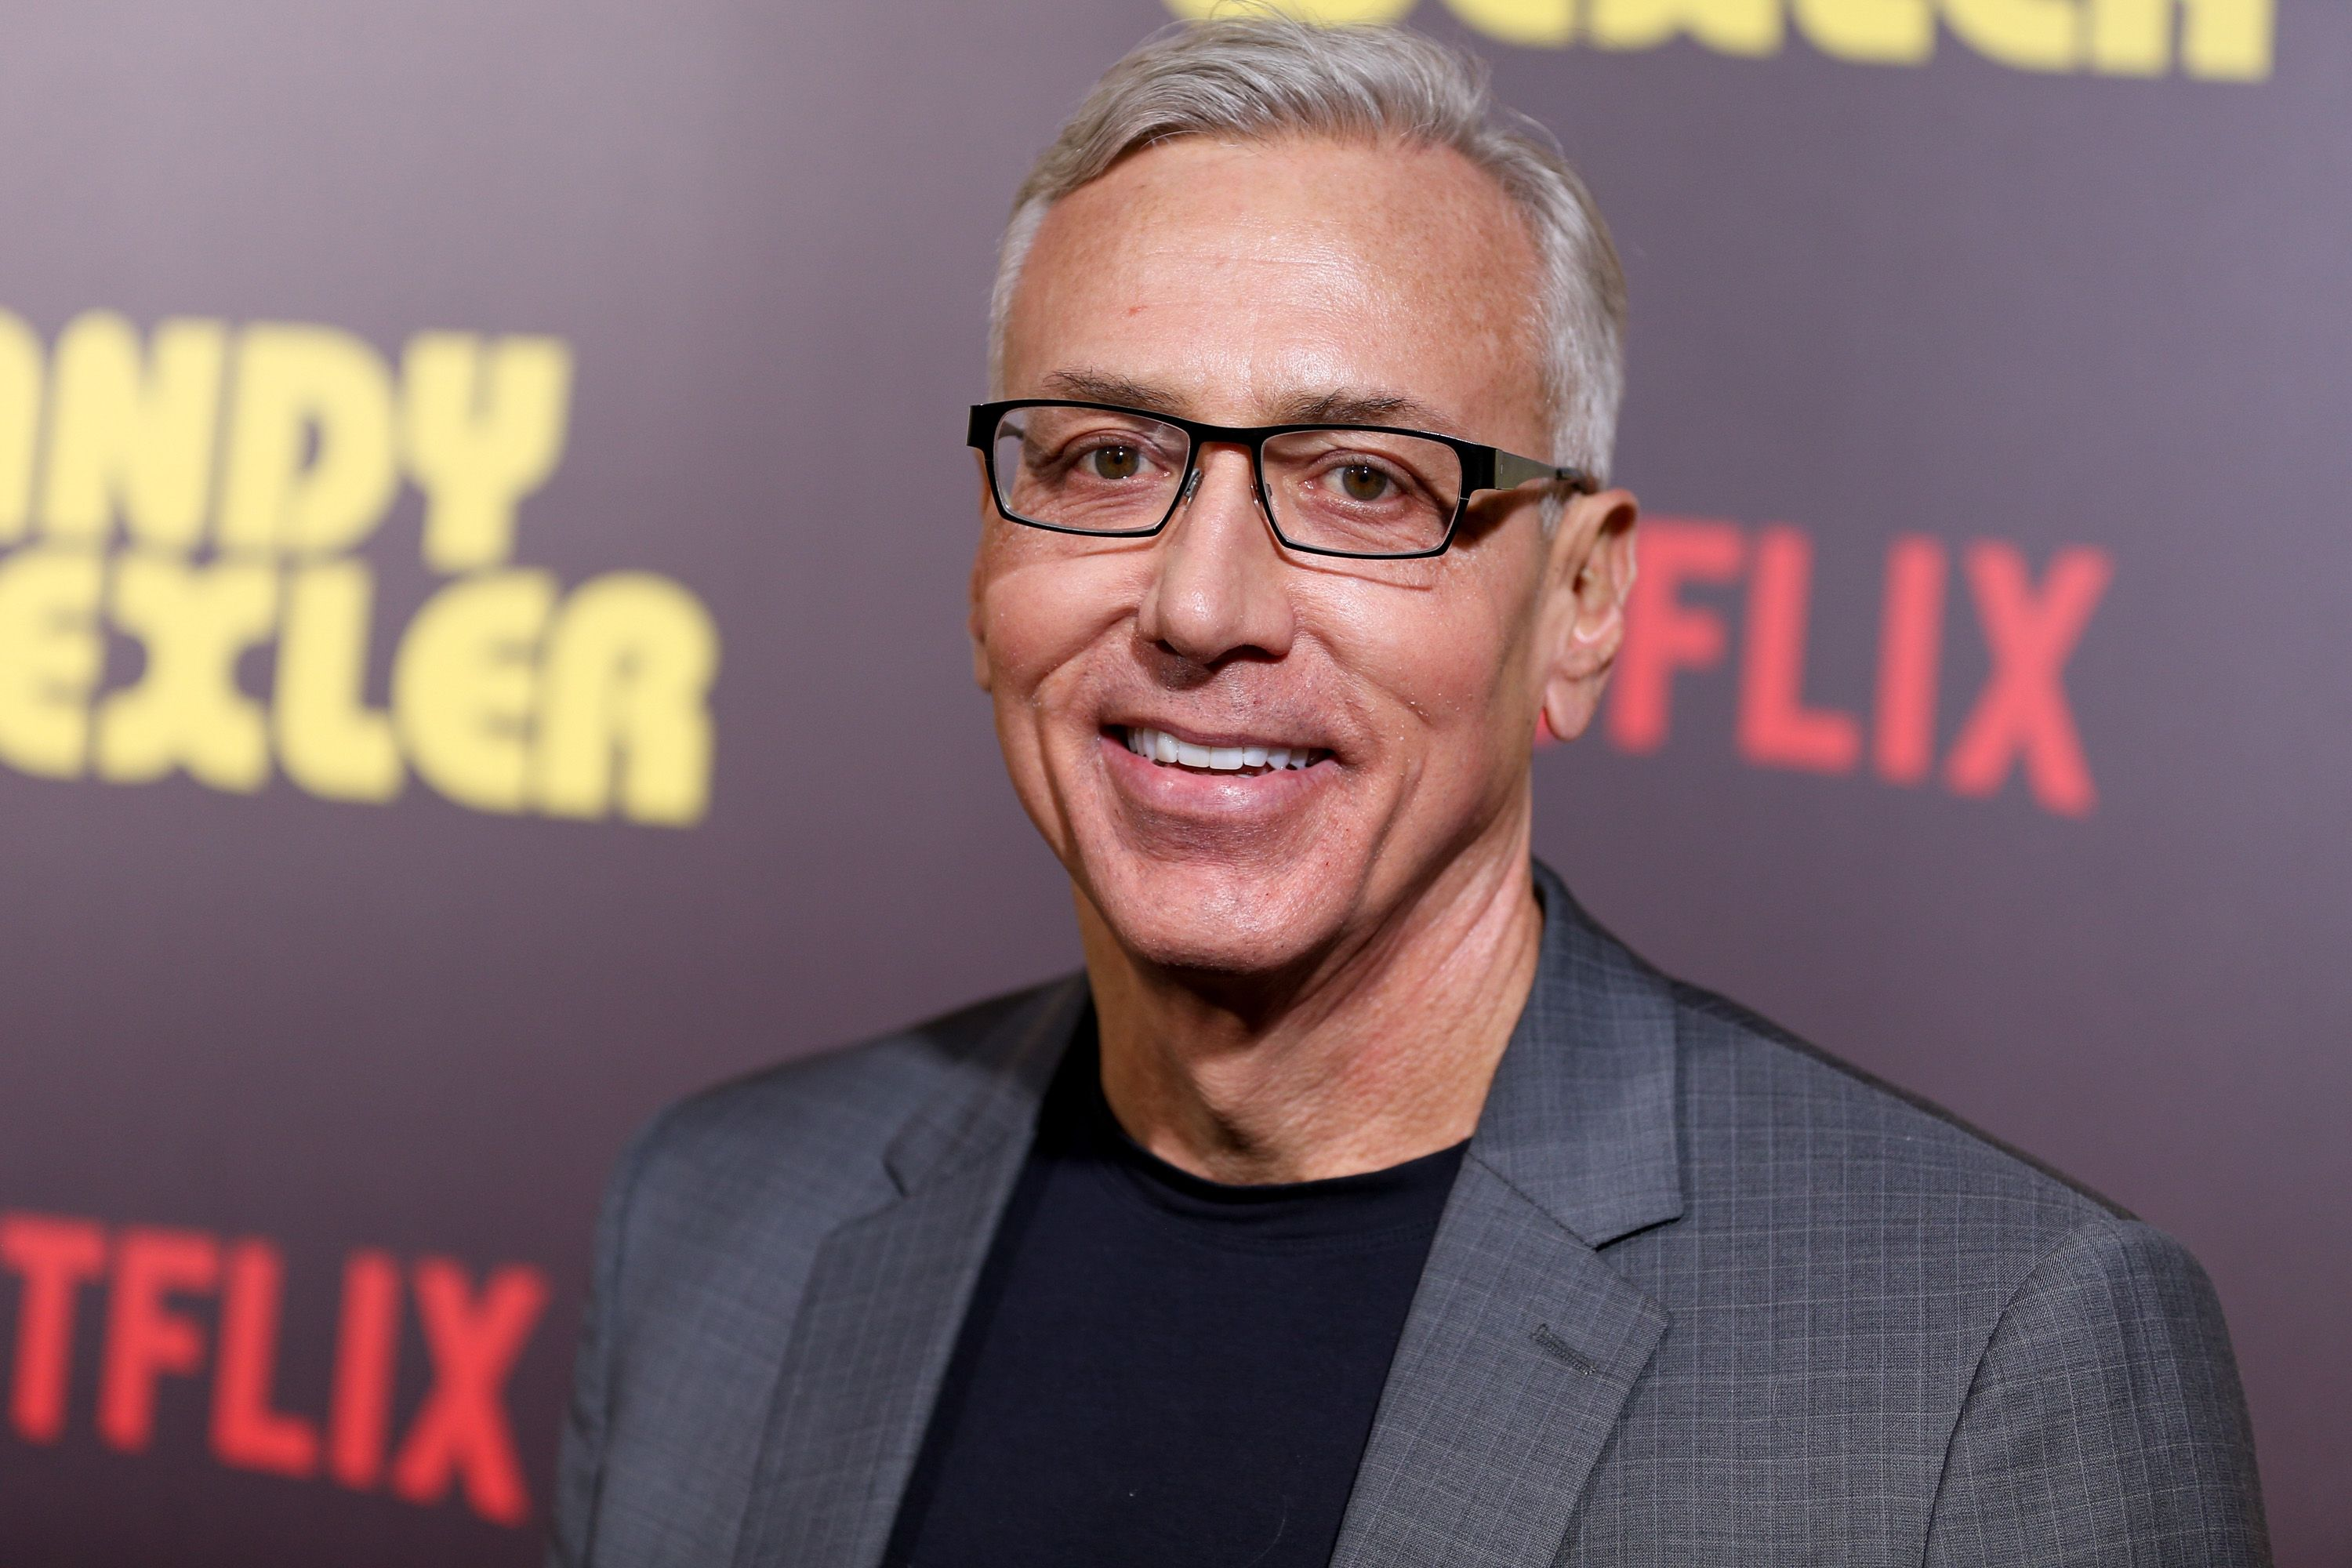 """Dr. Drew Pinsky attends the premiere of """"Sandy Wexler"""" at the ArcLight Cinemas Cinerama Dome on April 6, 2017 in Hollywood, California. 